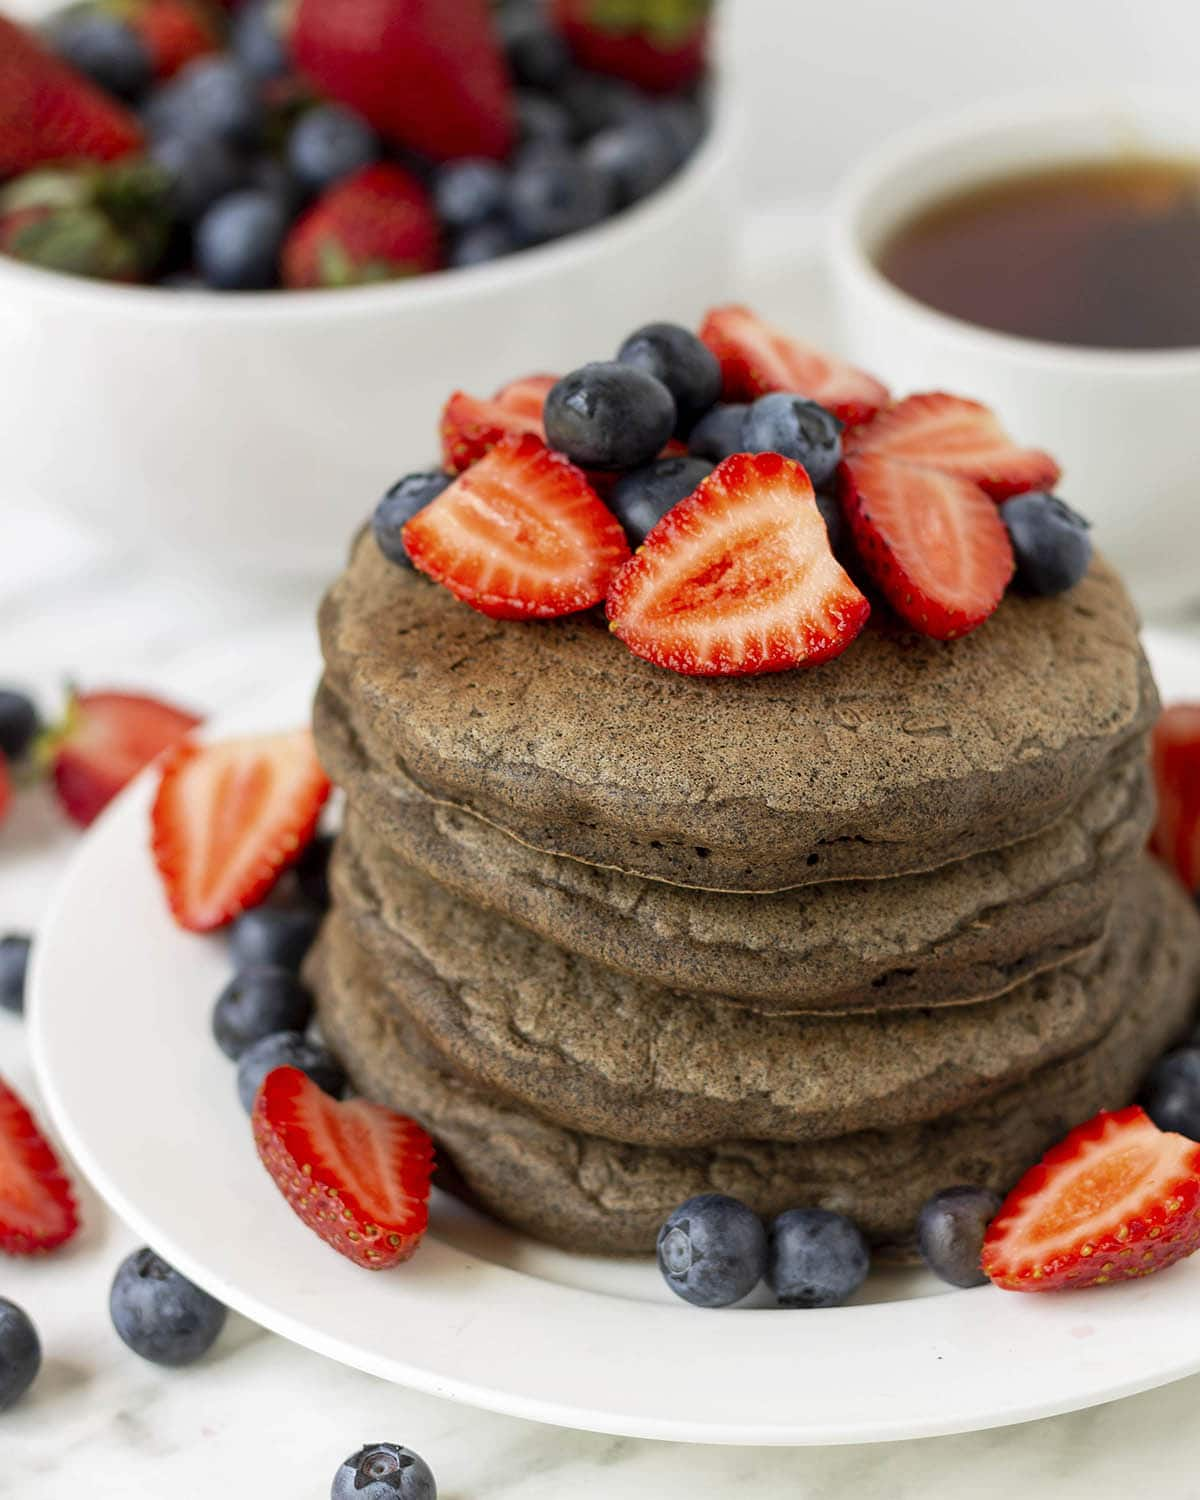 A stack of four buckwheat pancakes on a white plate, fresh blueberries and strawberries garnish the pancakes and plate.